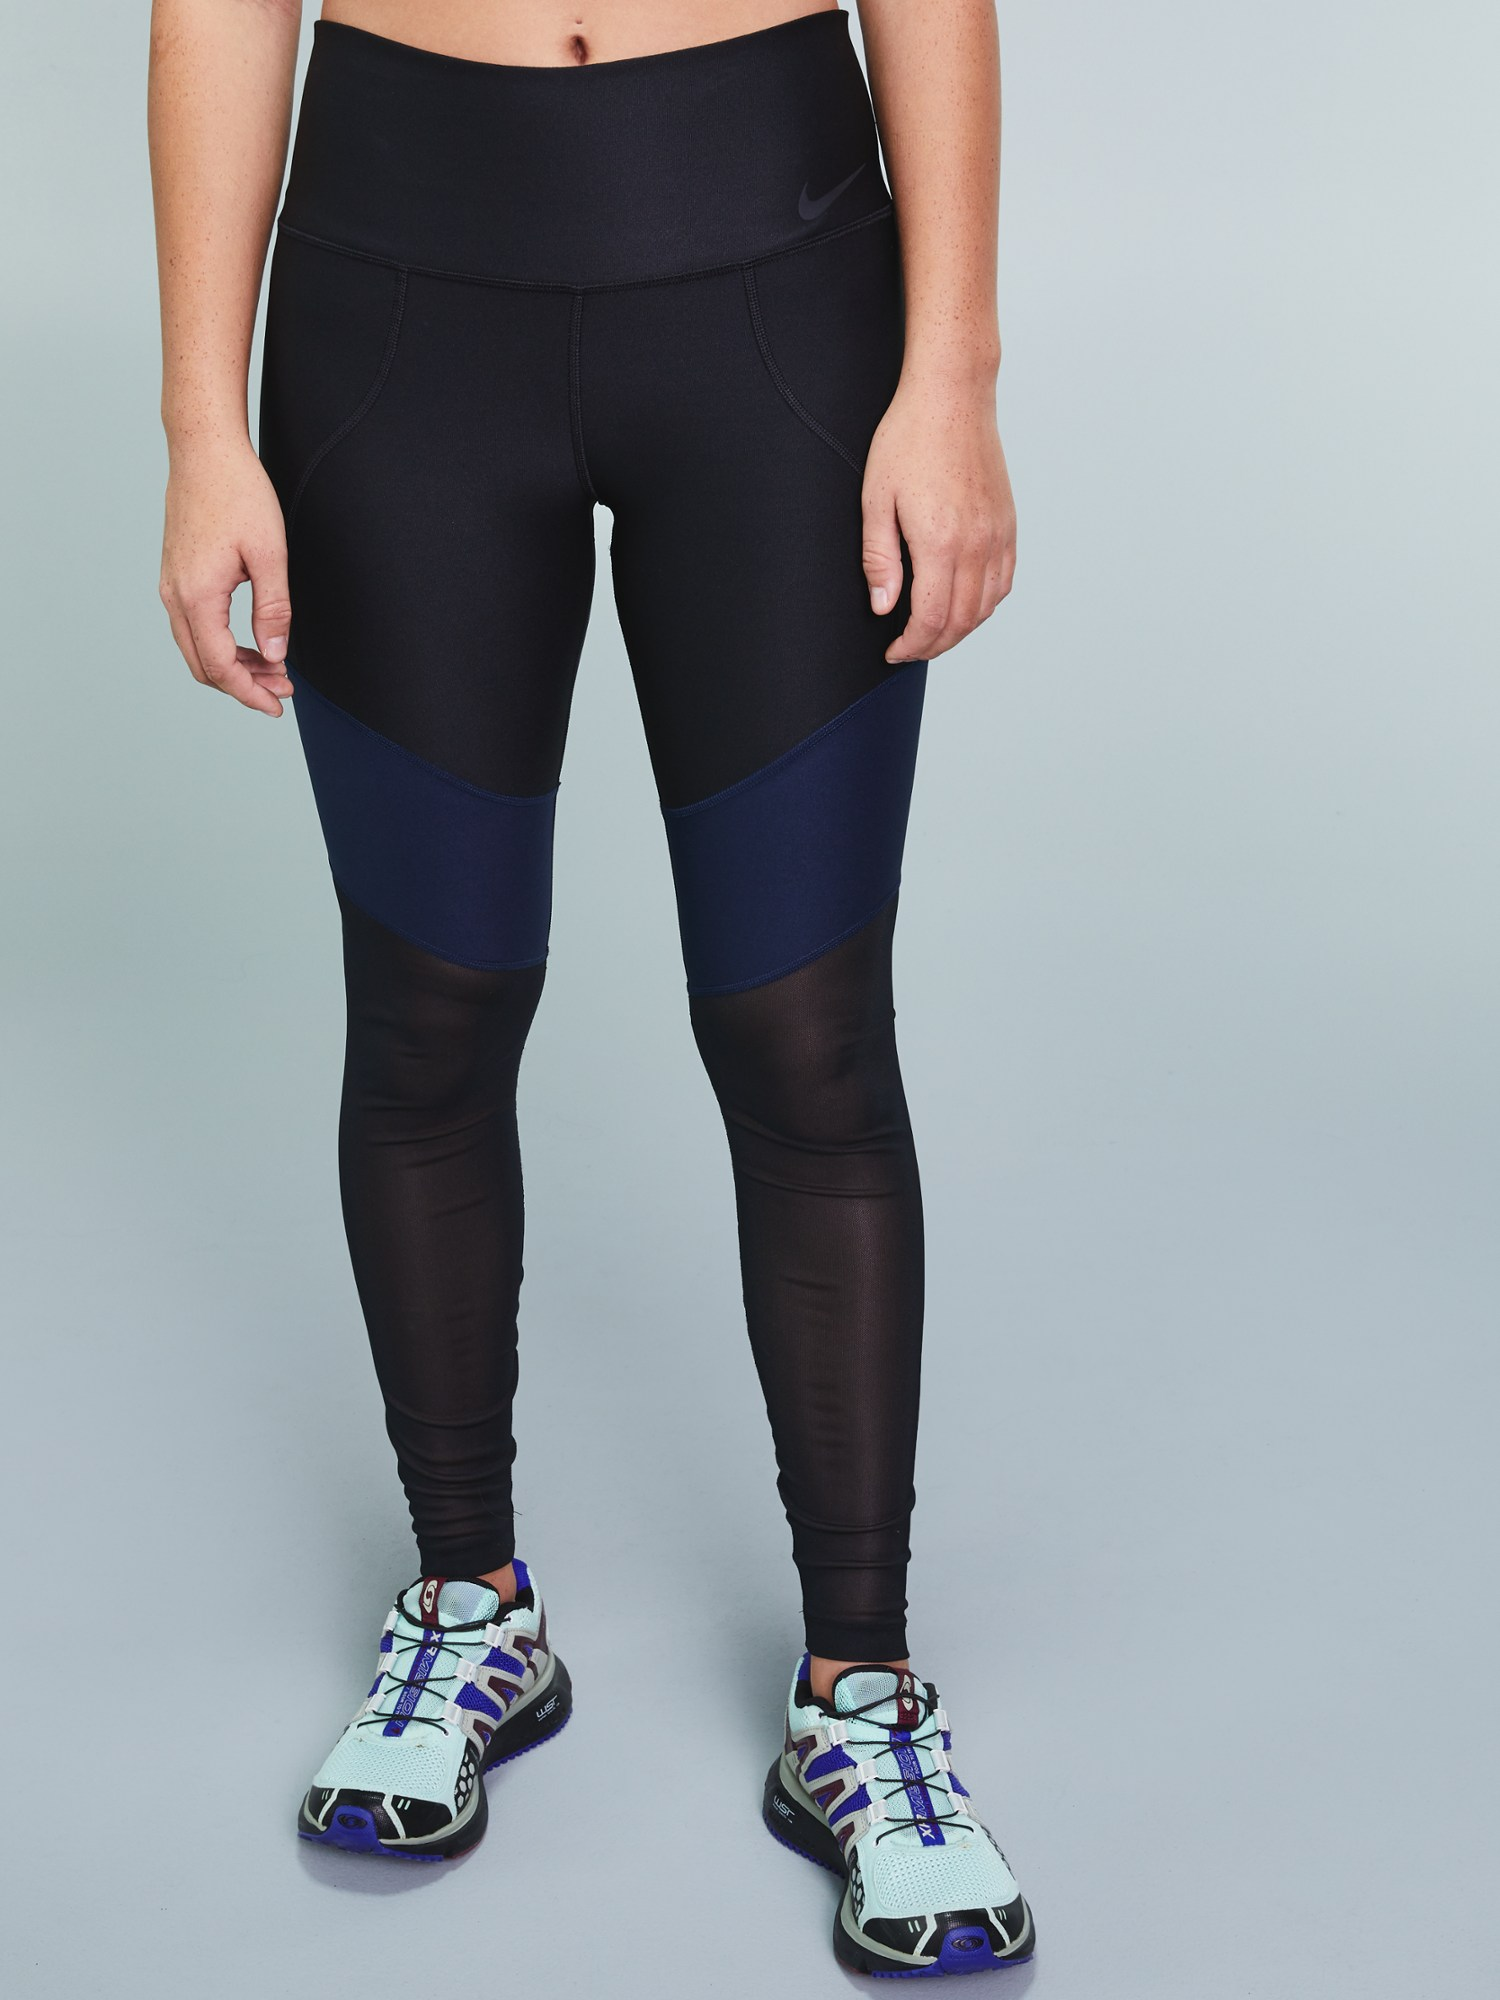 Nike High-Rise Power Tights - Women's